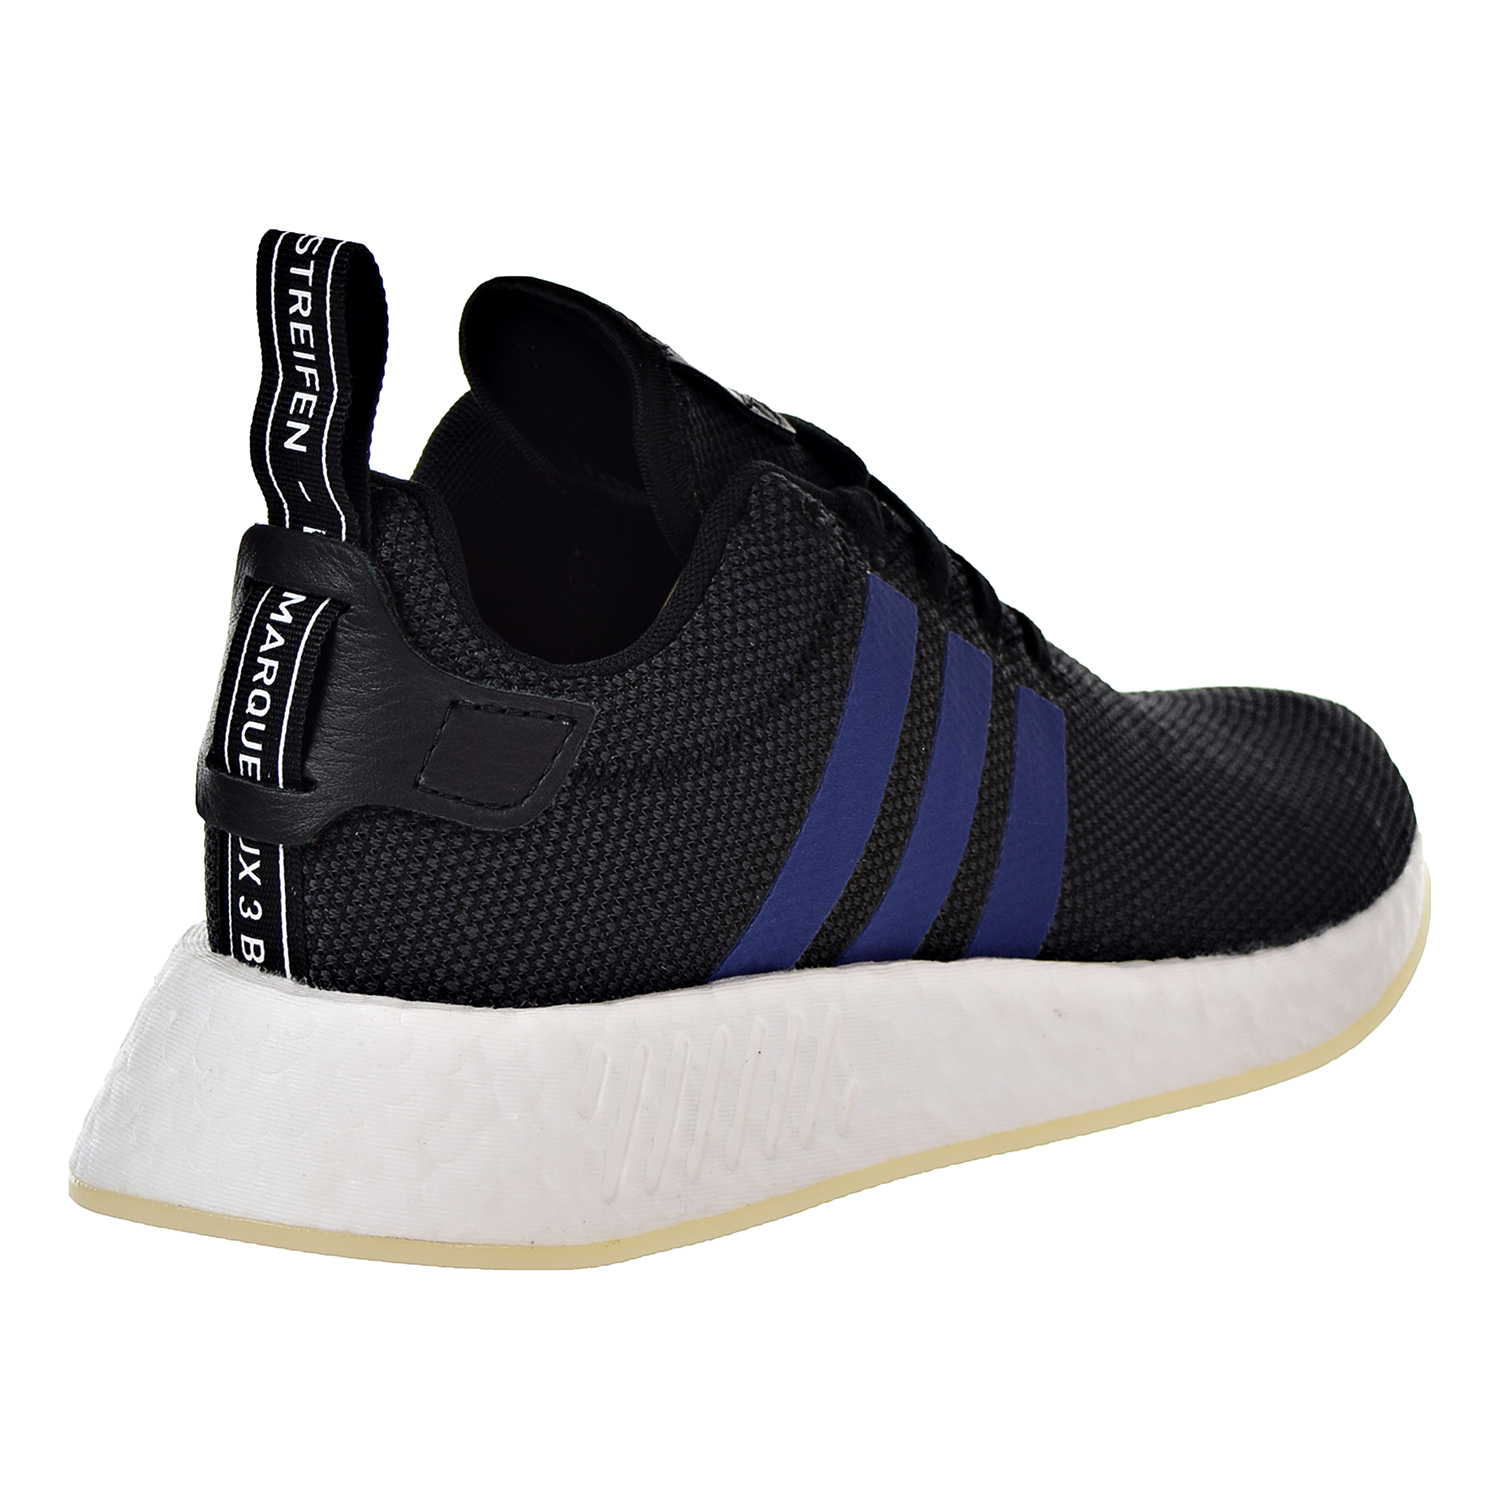 7282fd4dc Adidas NMD R2 Womens Shoes Core Black Noble Indigo Running White cq2008